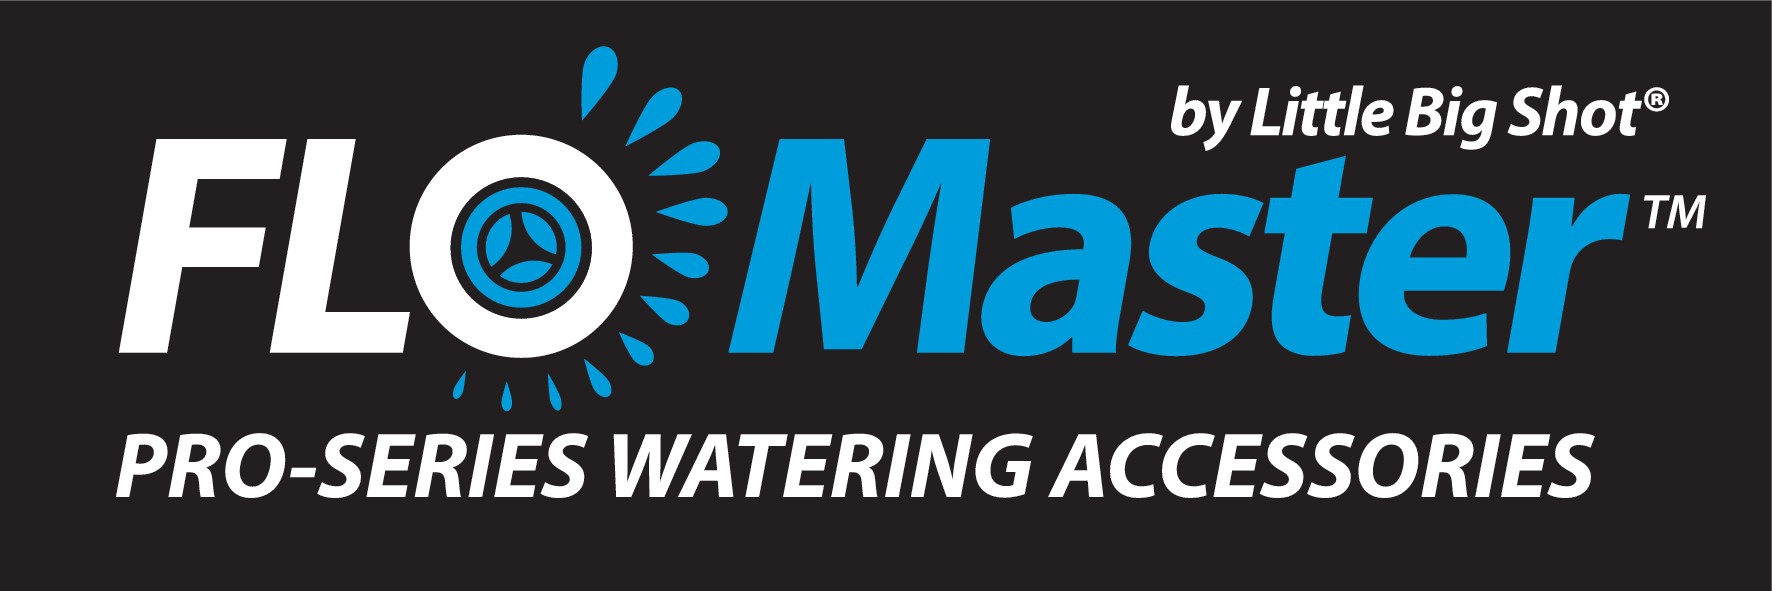 Stand-out, disruptive, retail-appropriate Logo for a new, patented watering accessory